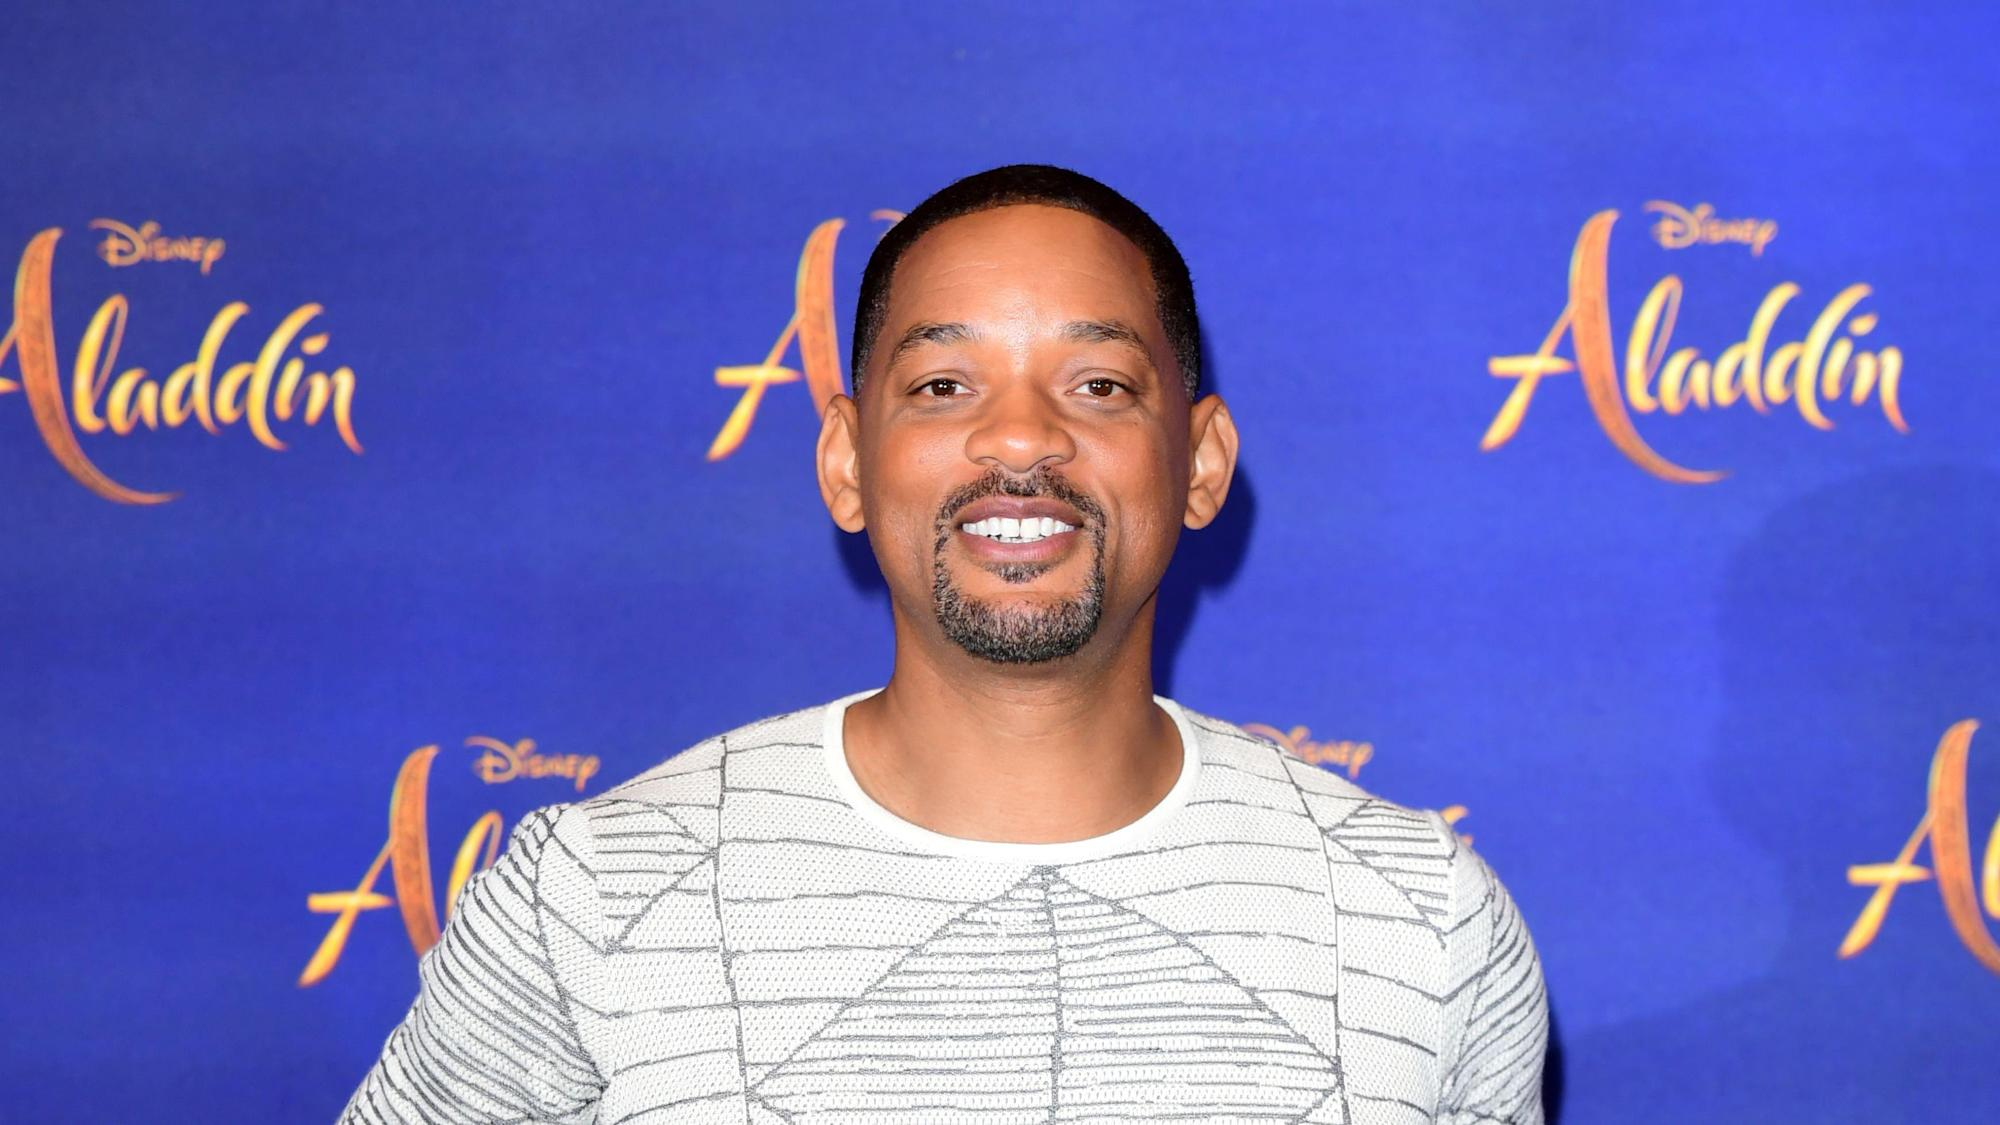 Will Smith discusses his experiences of racism